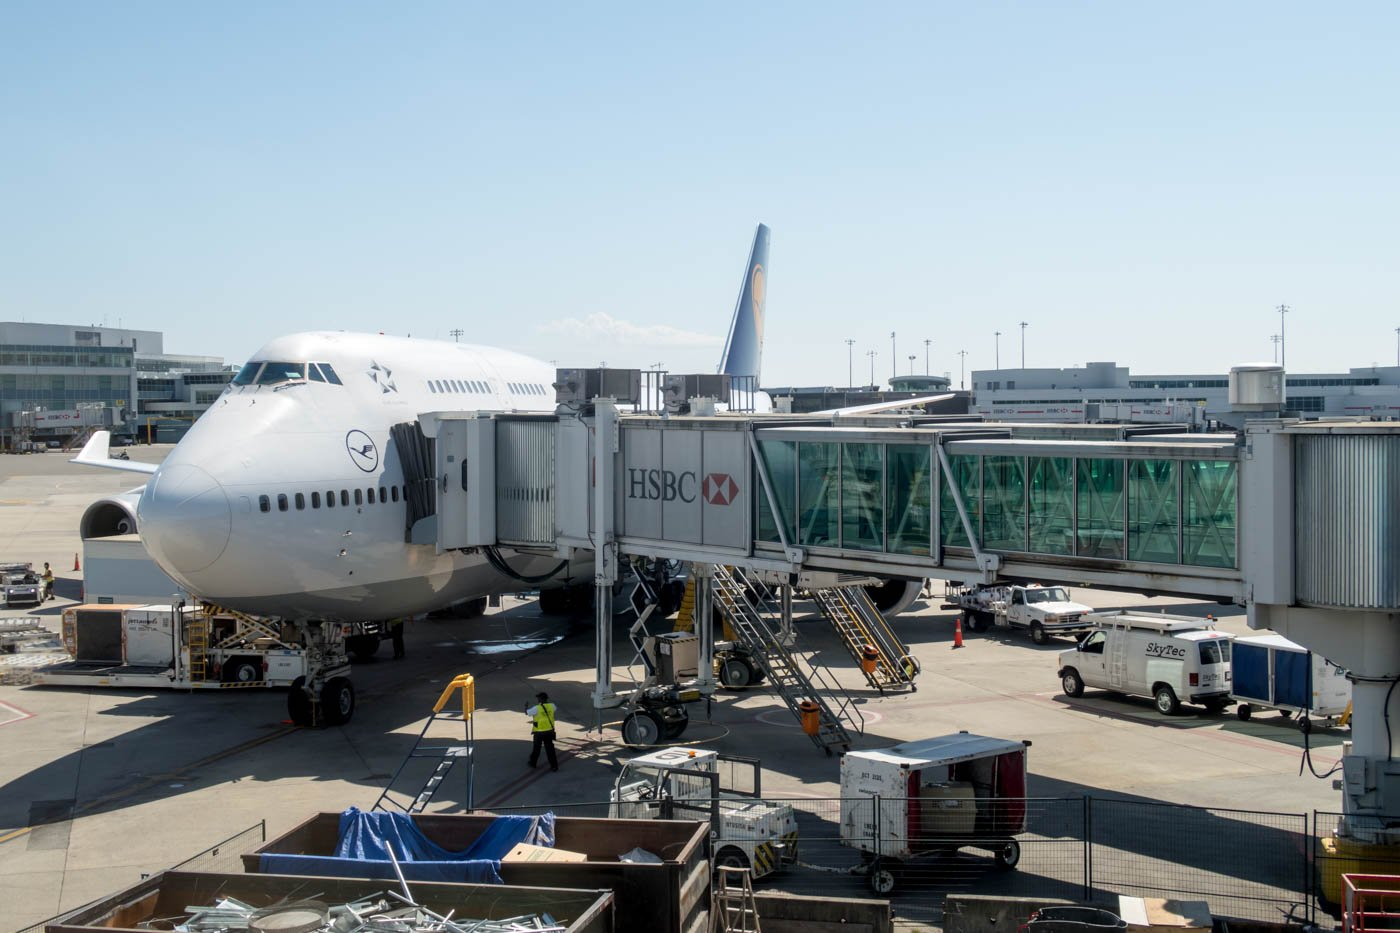 Lufthansa 747 in Vancouver